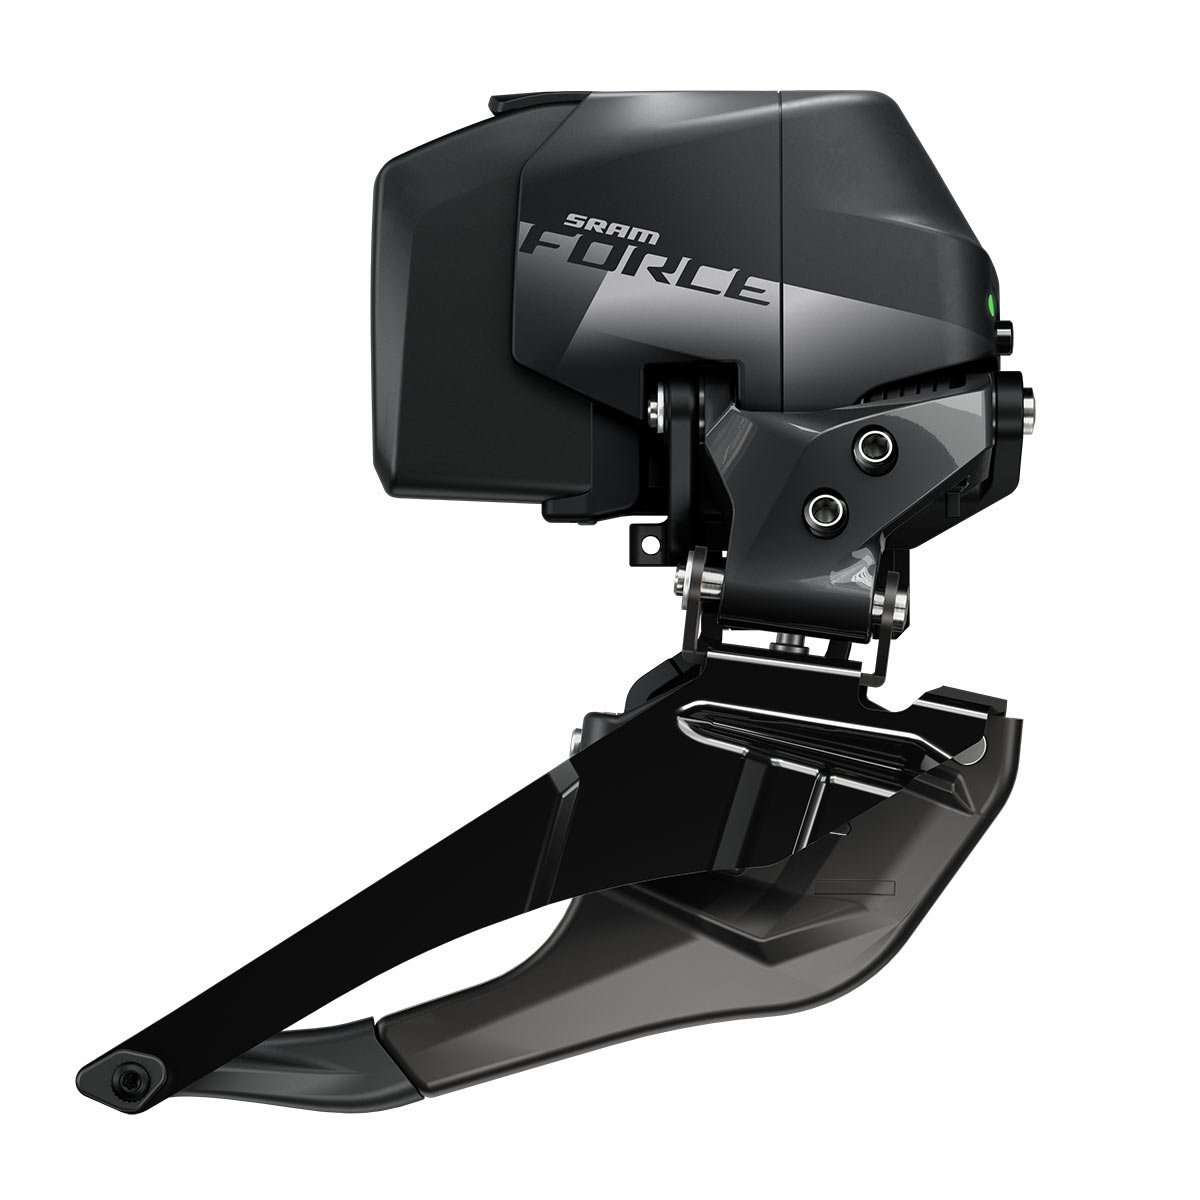 sram force axs wide front derailleur adds more tire clearance